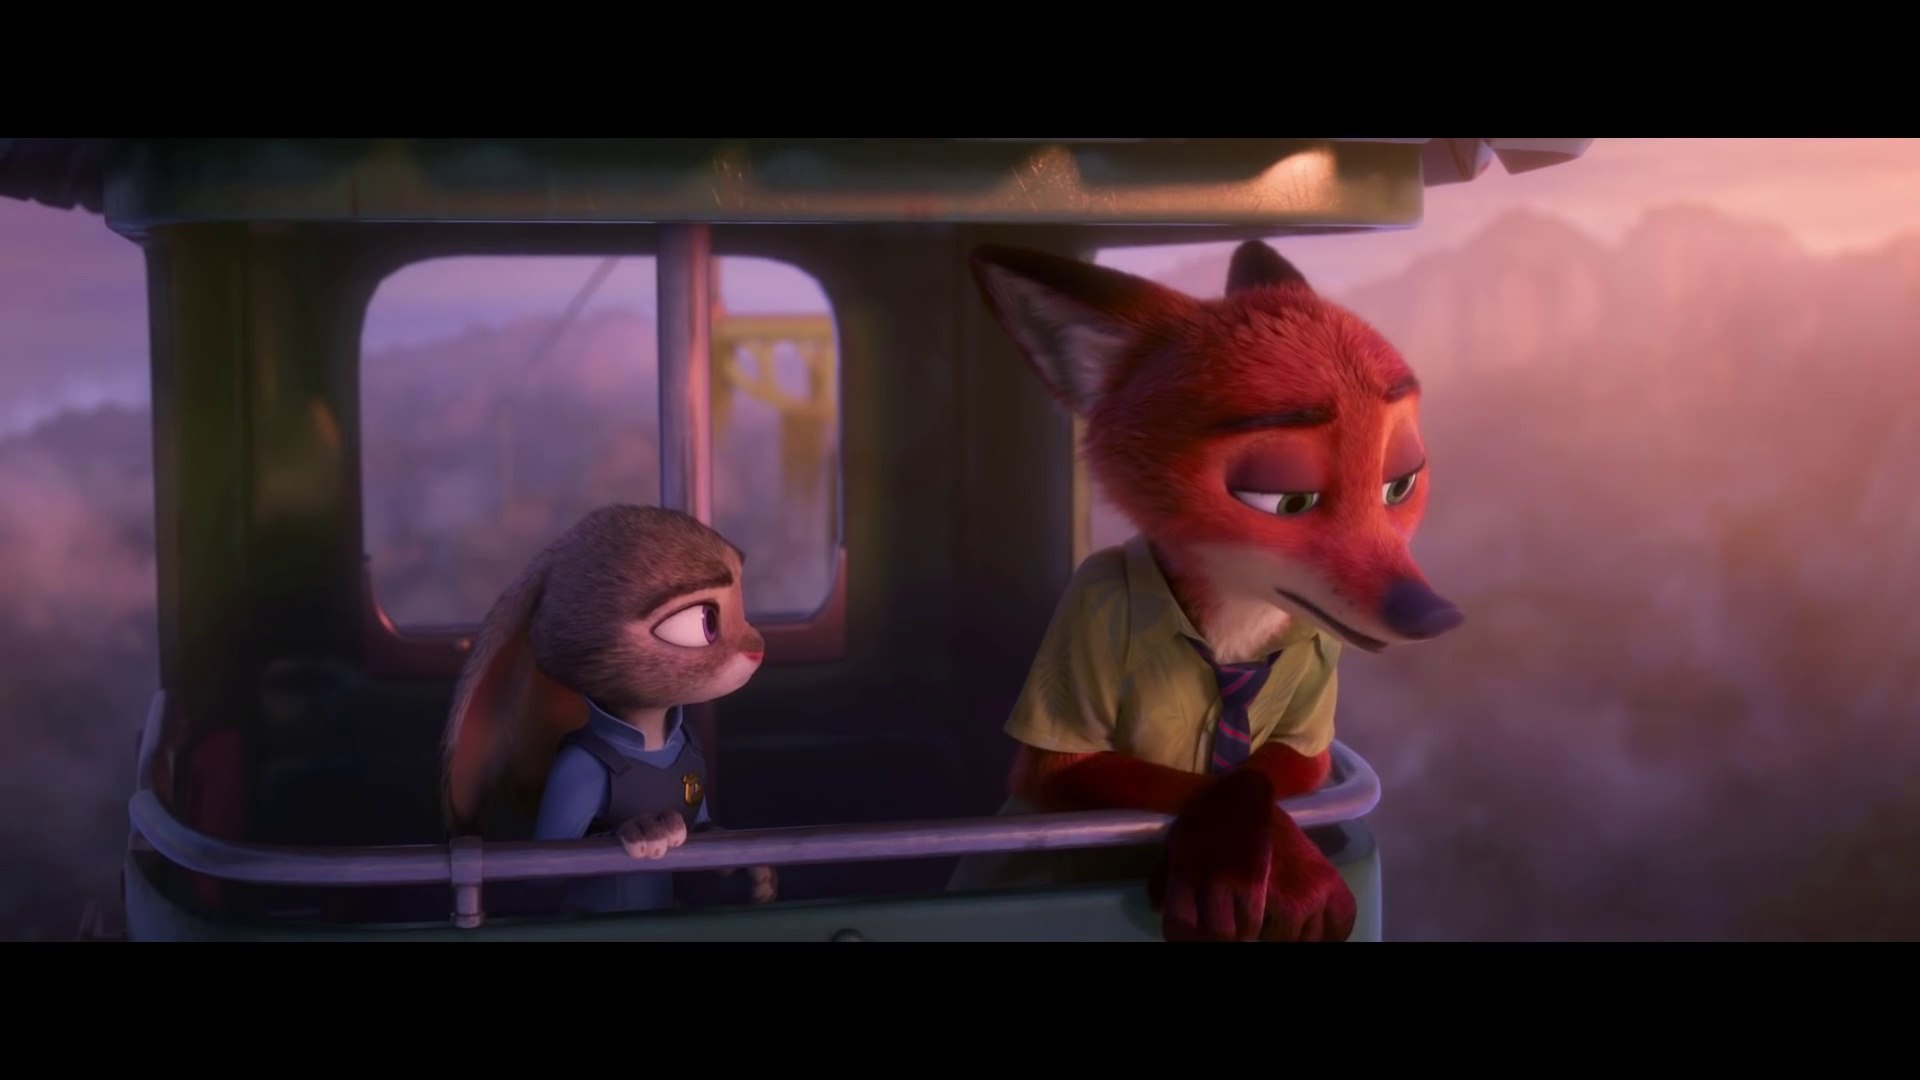 Zootopia Clip Gondola Disney Animation Full Hd 1920x1080 Video Dailymotion